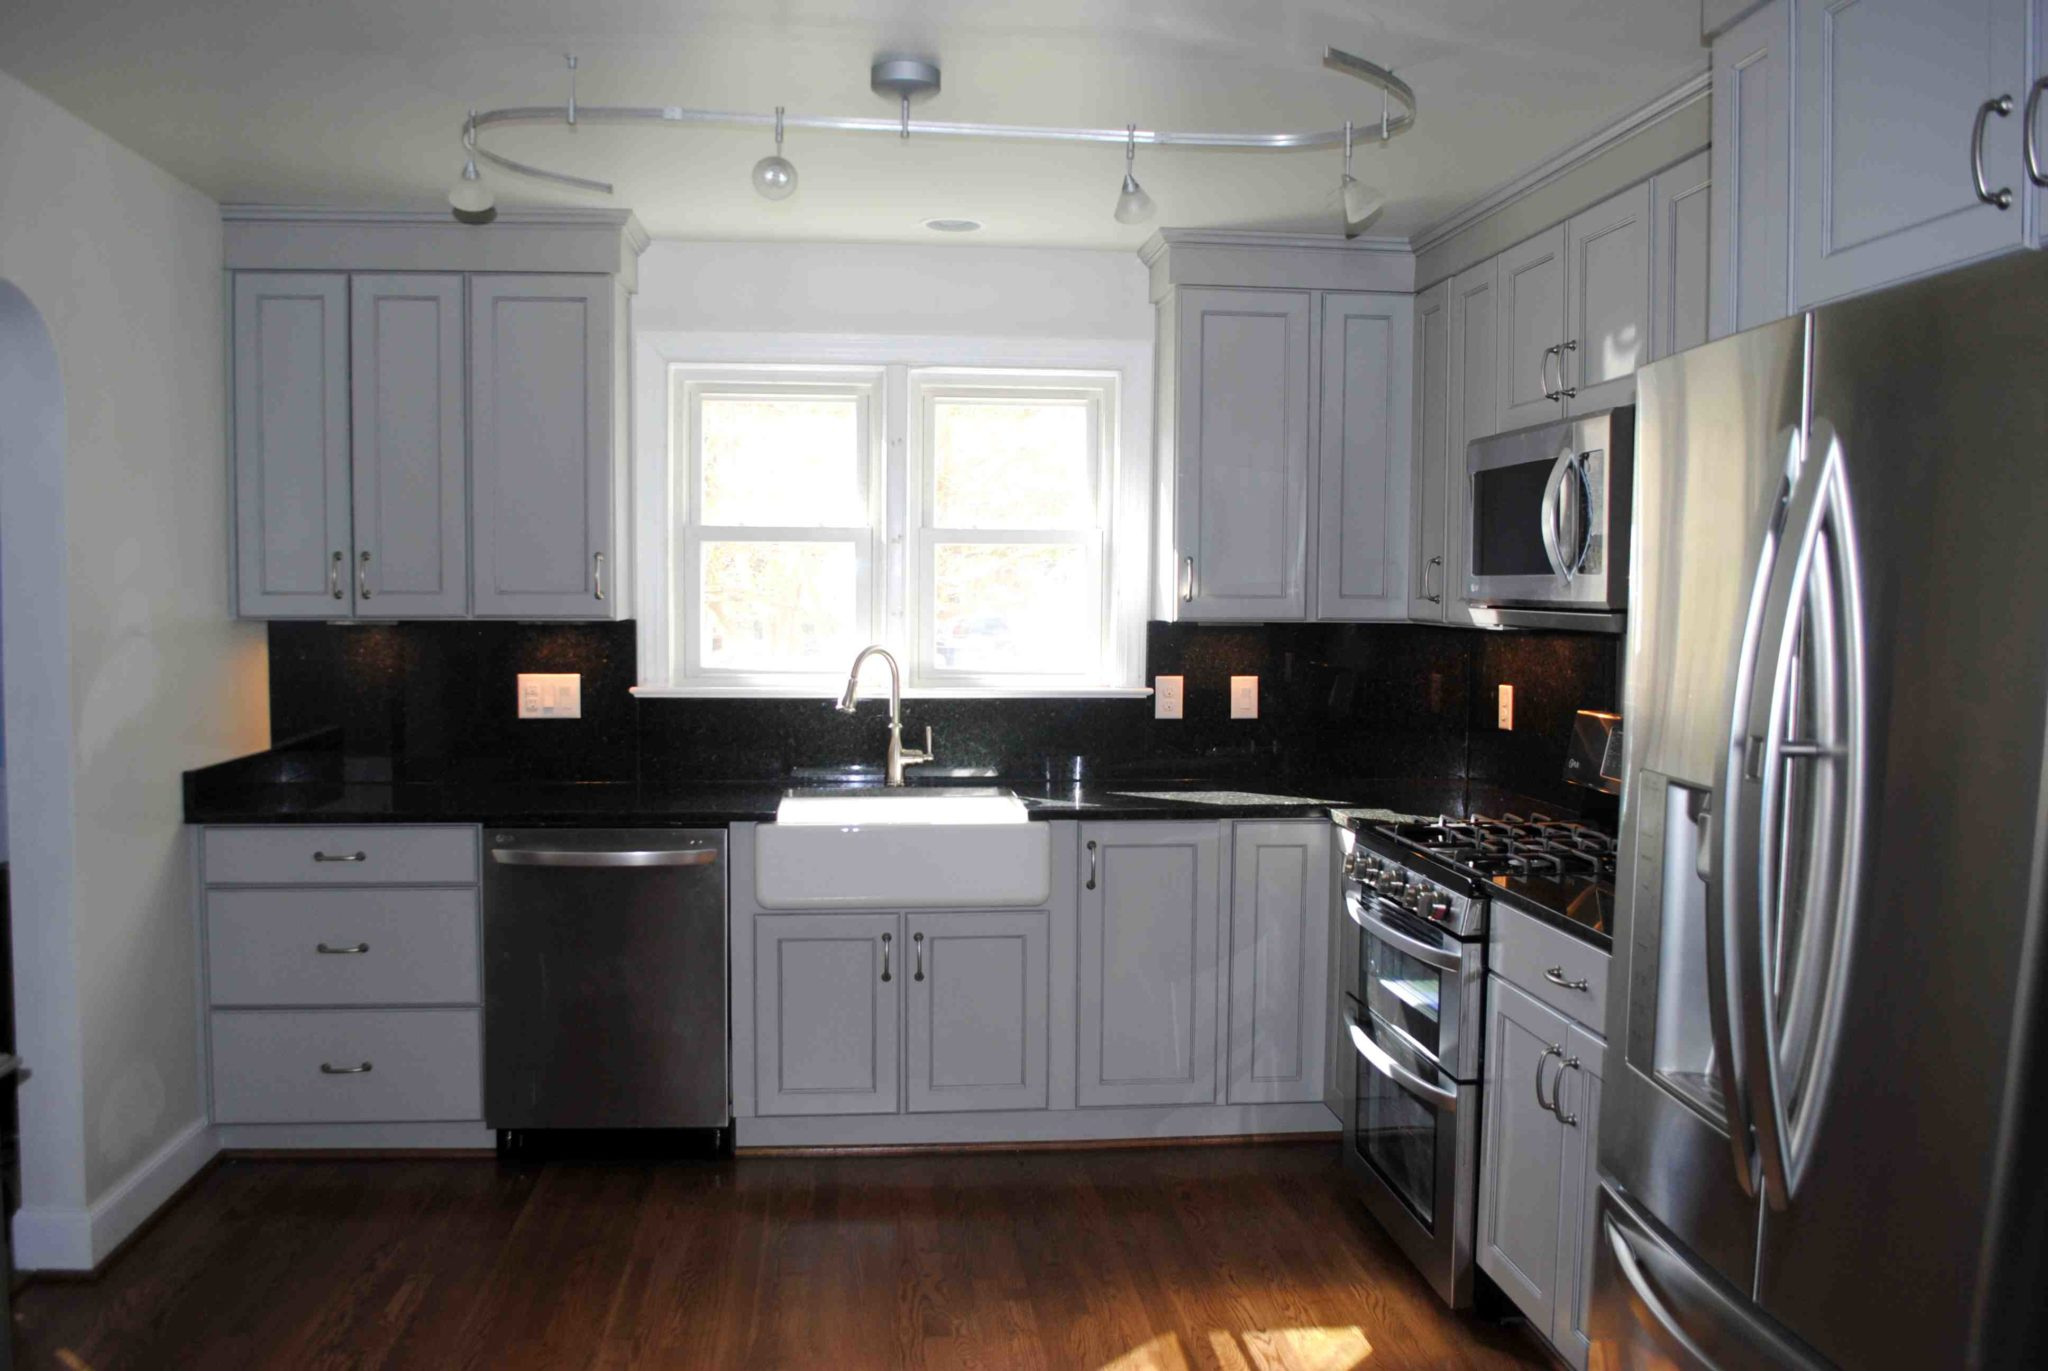 Pet friendly home designs hatchett design remodel for Kitchen cabinets 0 financing